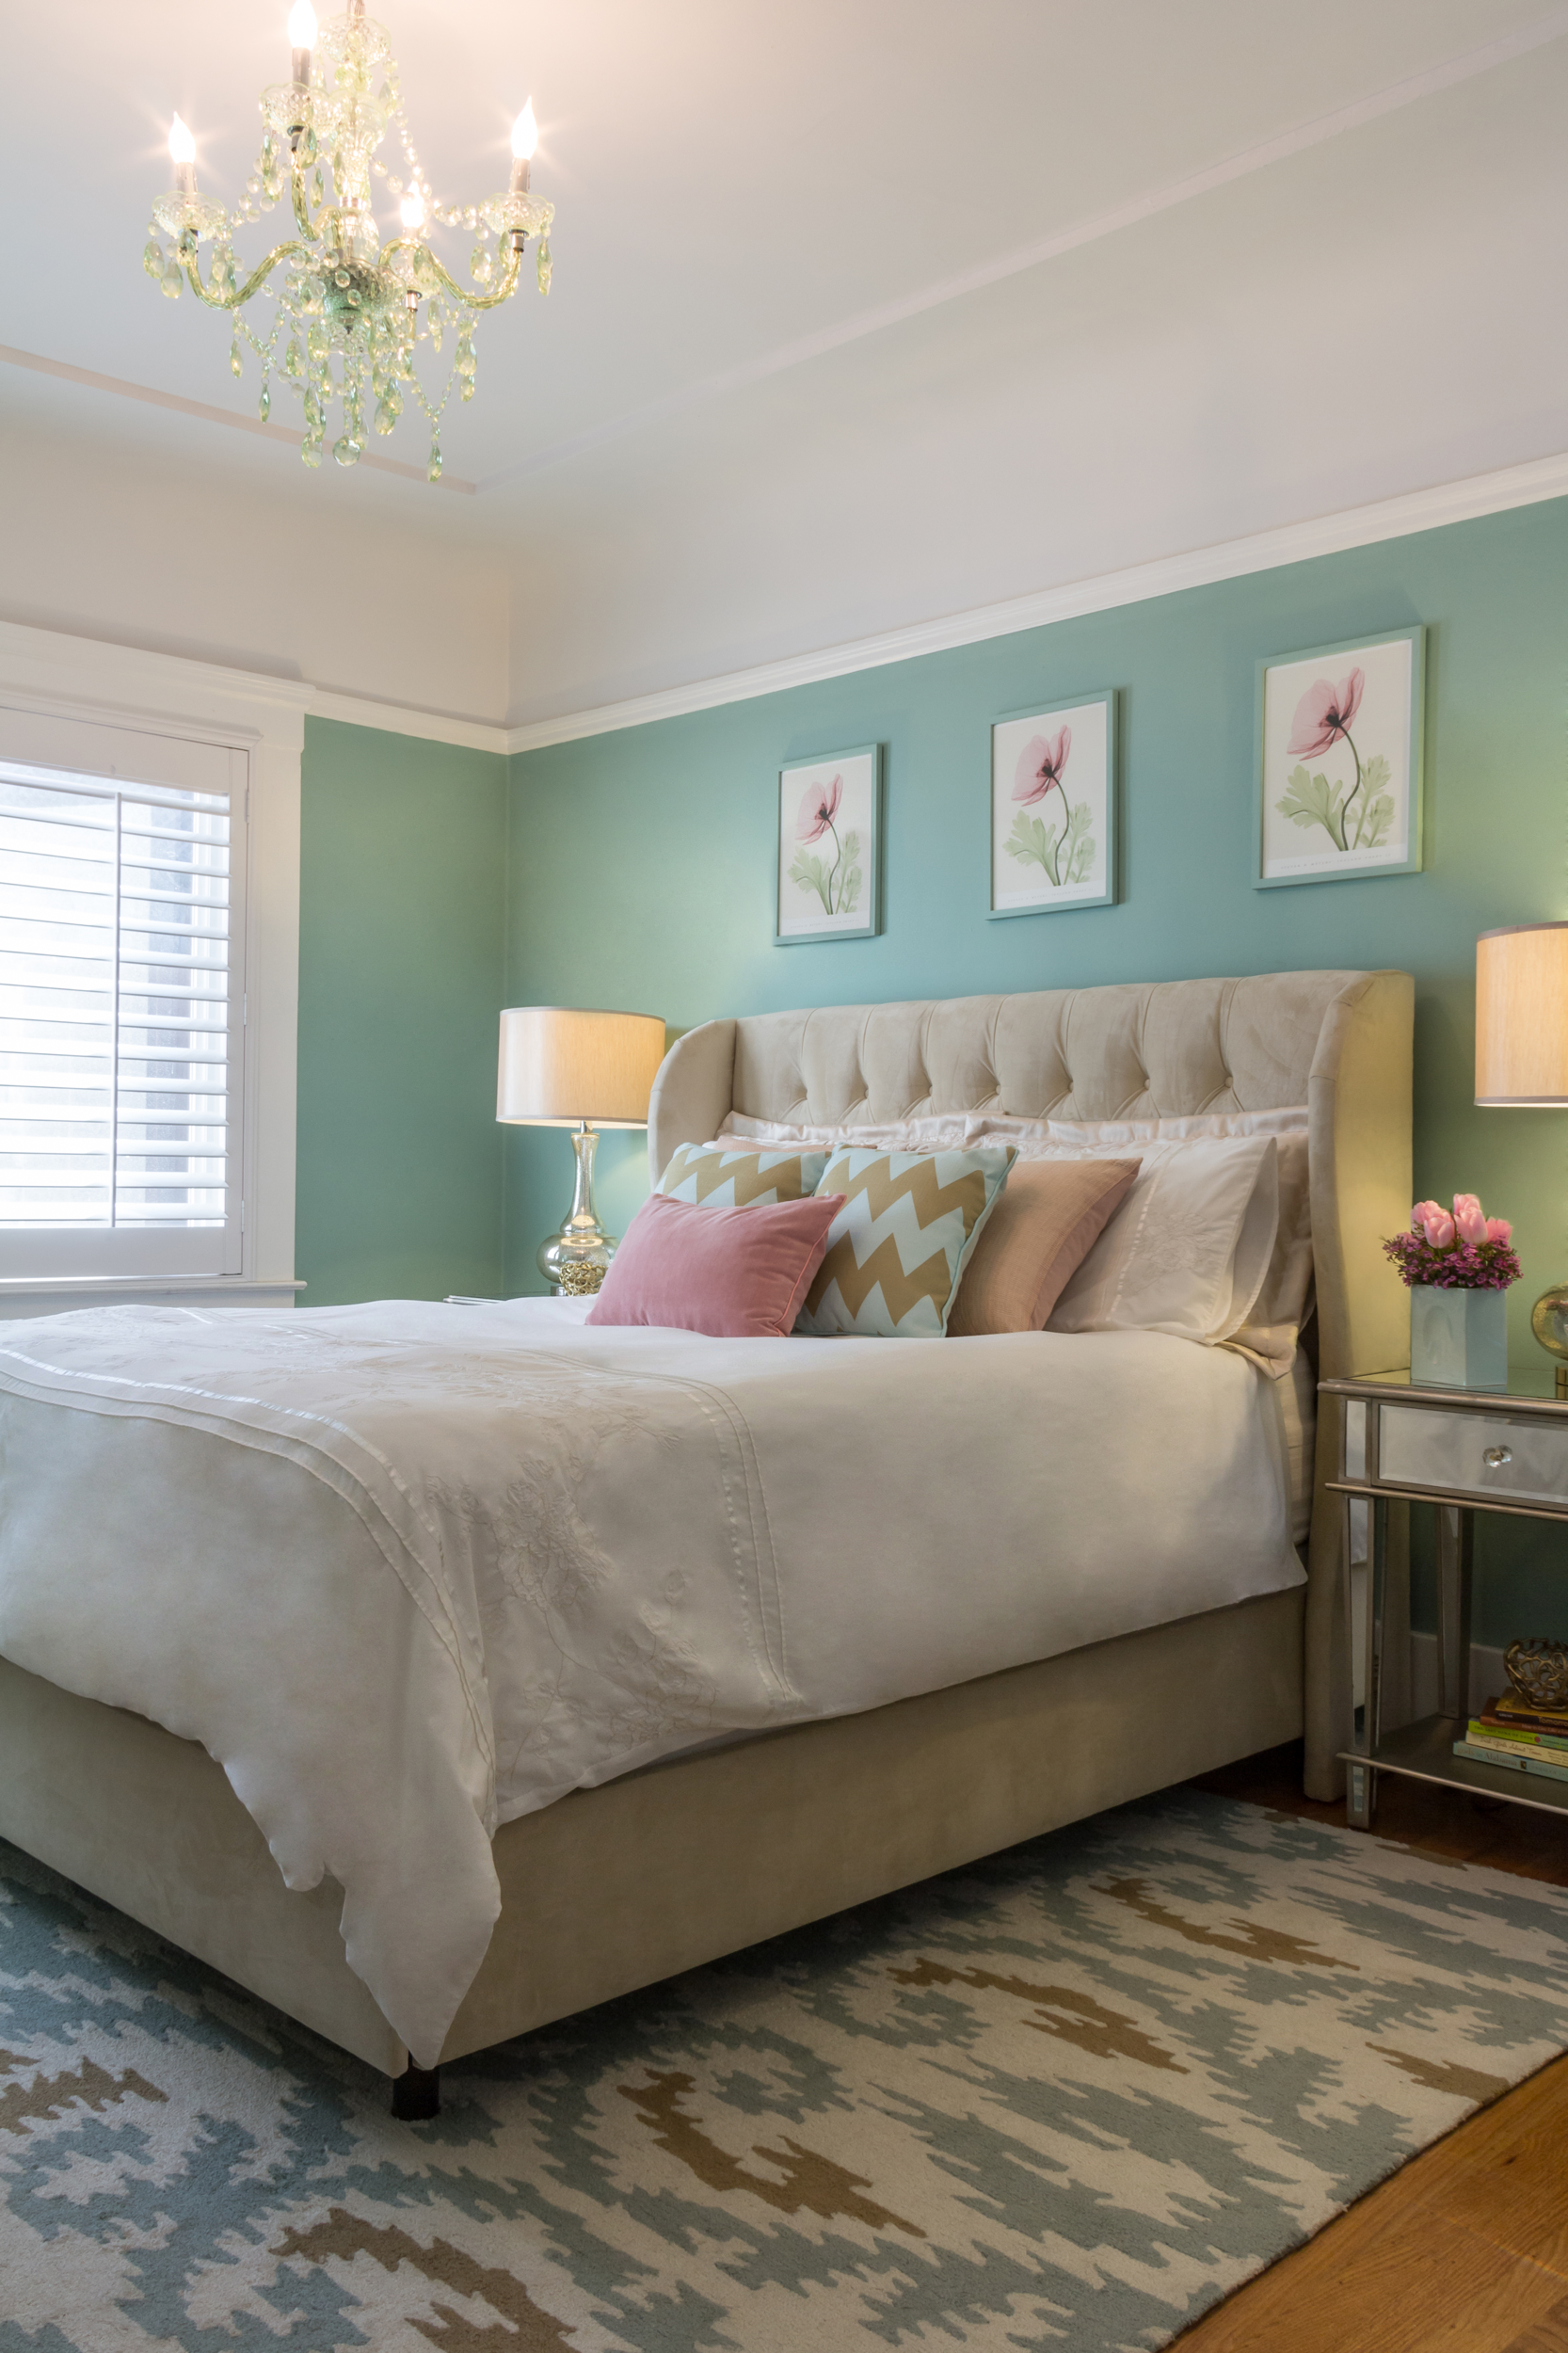 Lovely Feminine Bedroom With Various Shades Of Green And